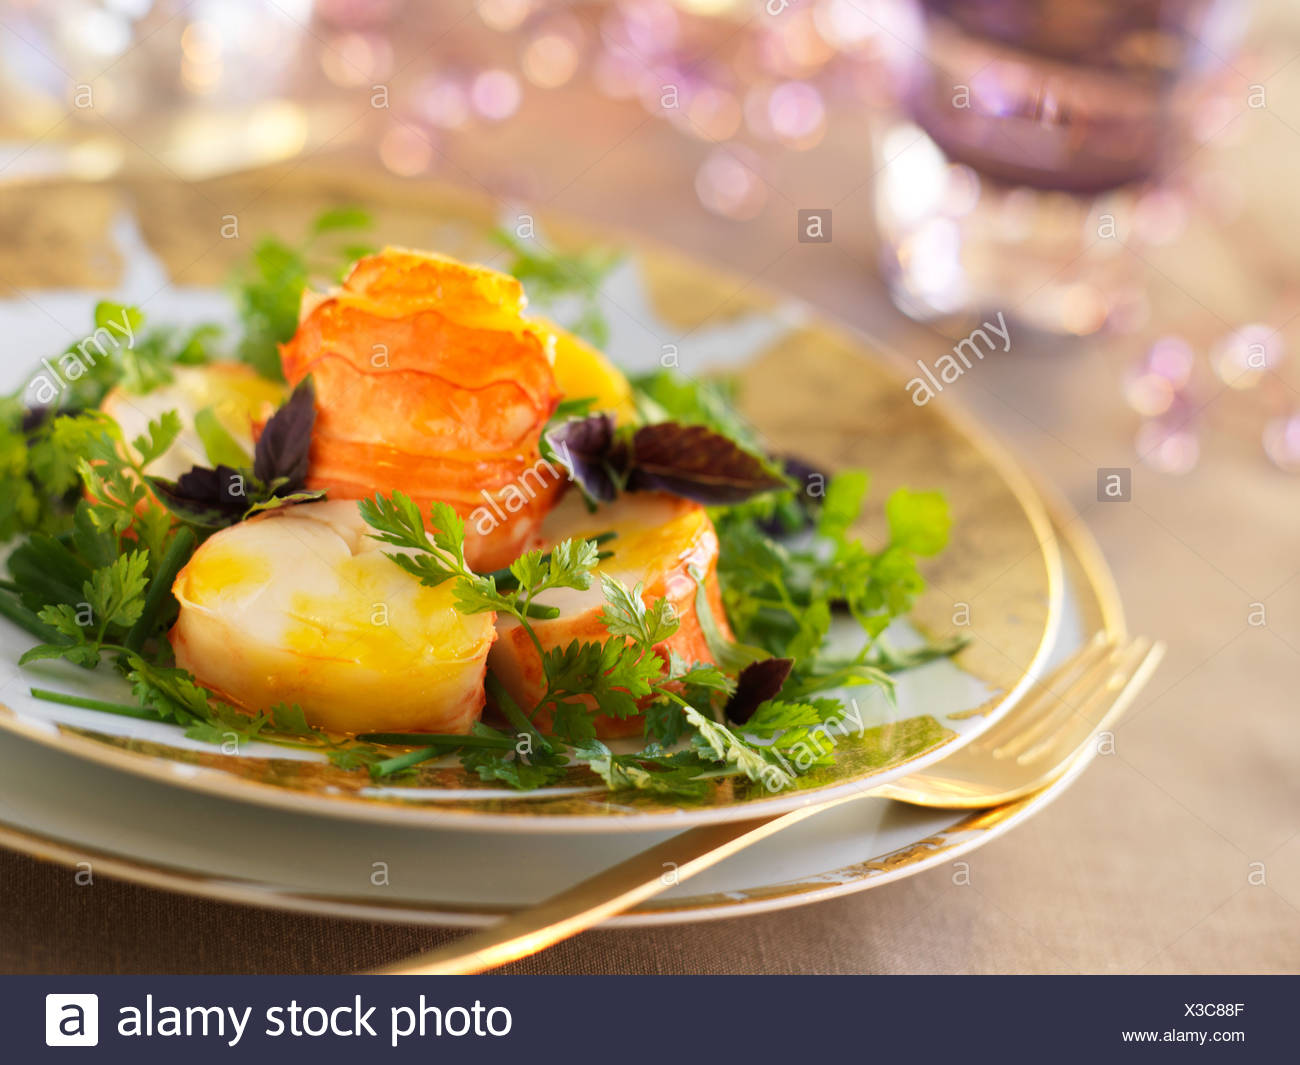 Spiny lobster tail with mango purée - Stock Image